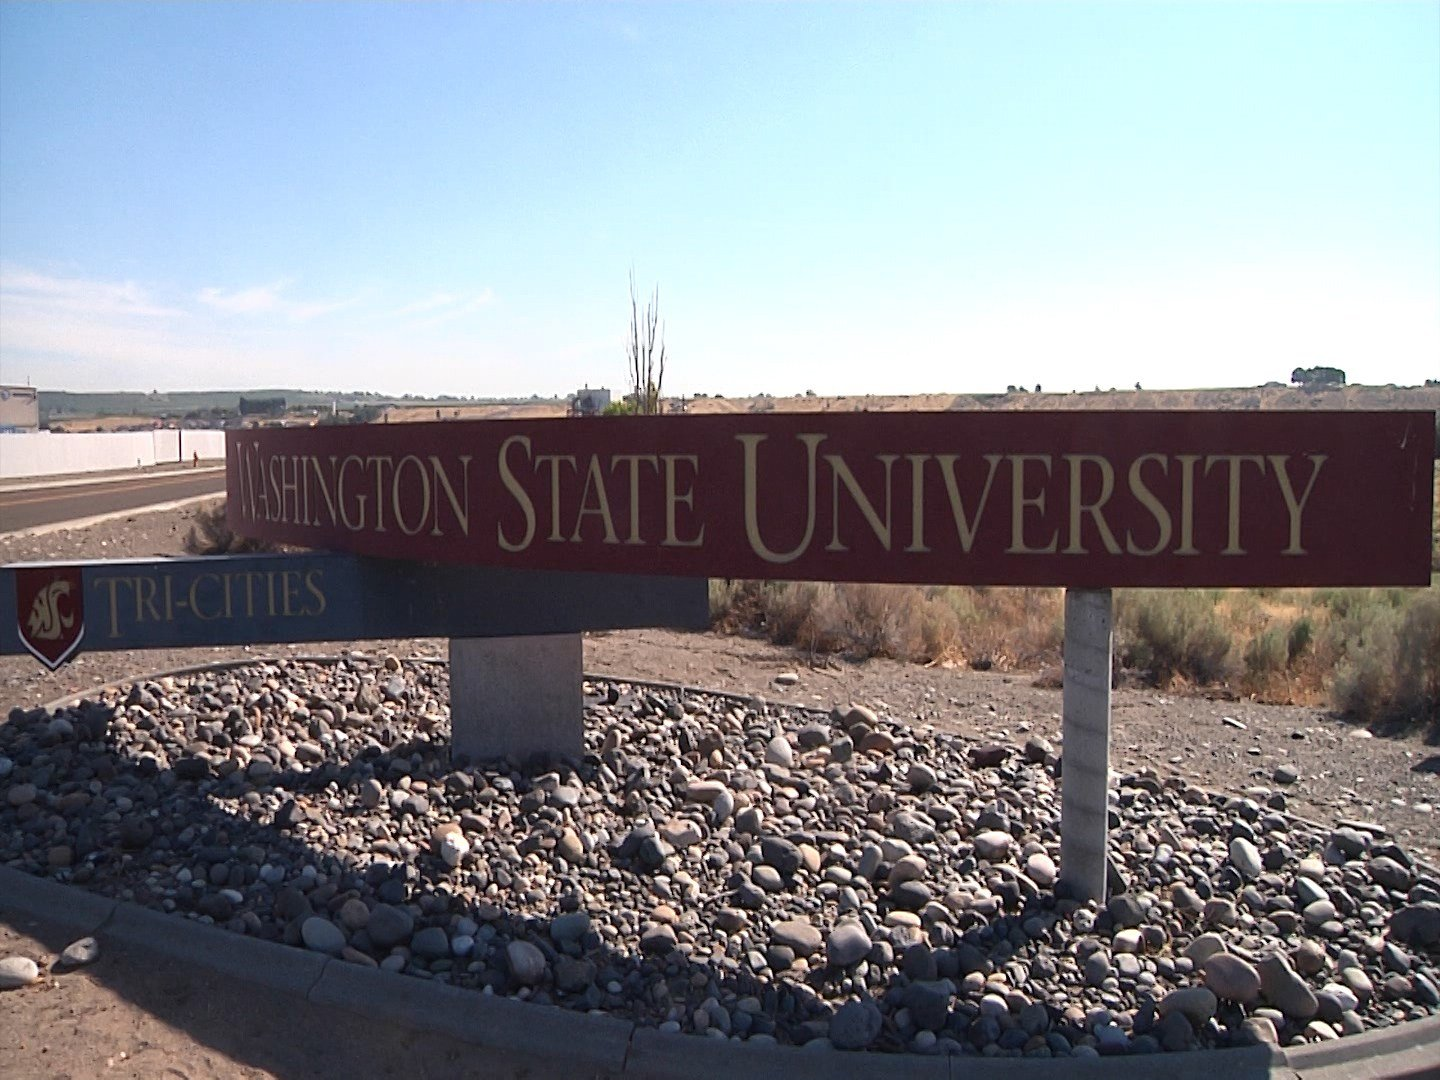 WSU receives $50,000 donation for STEM